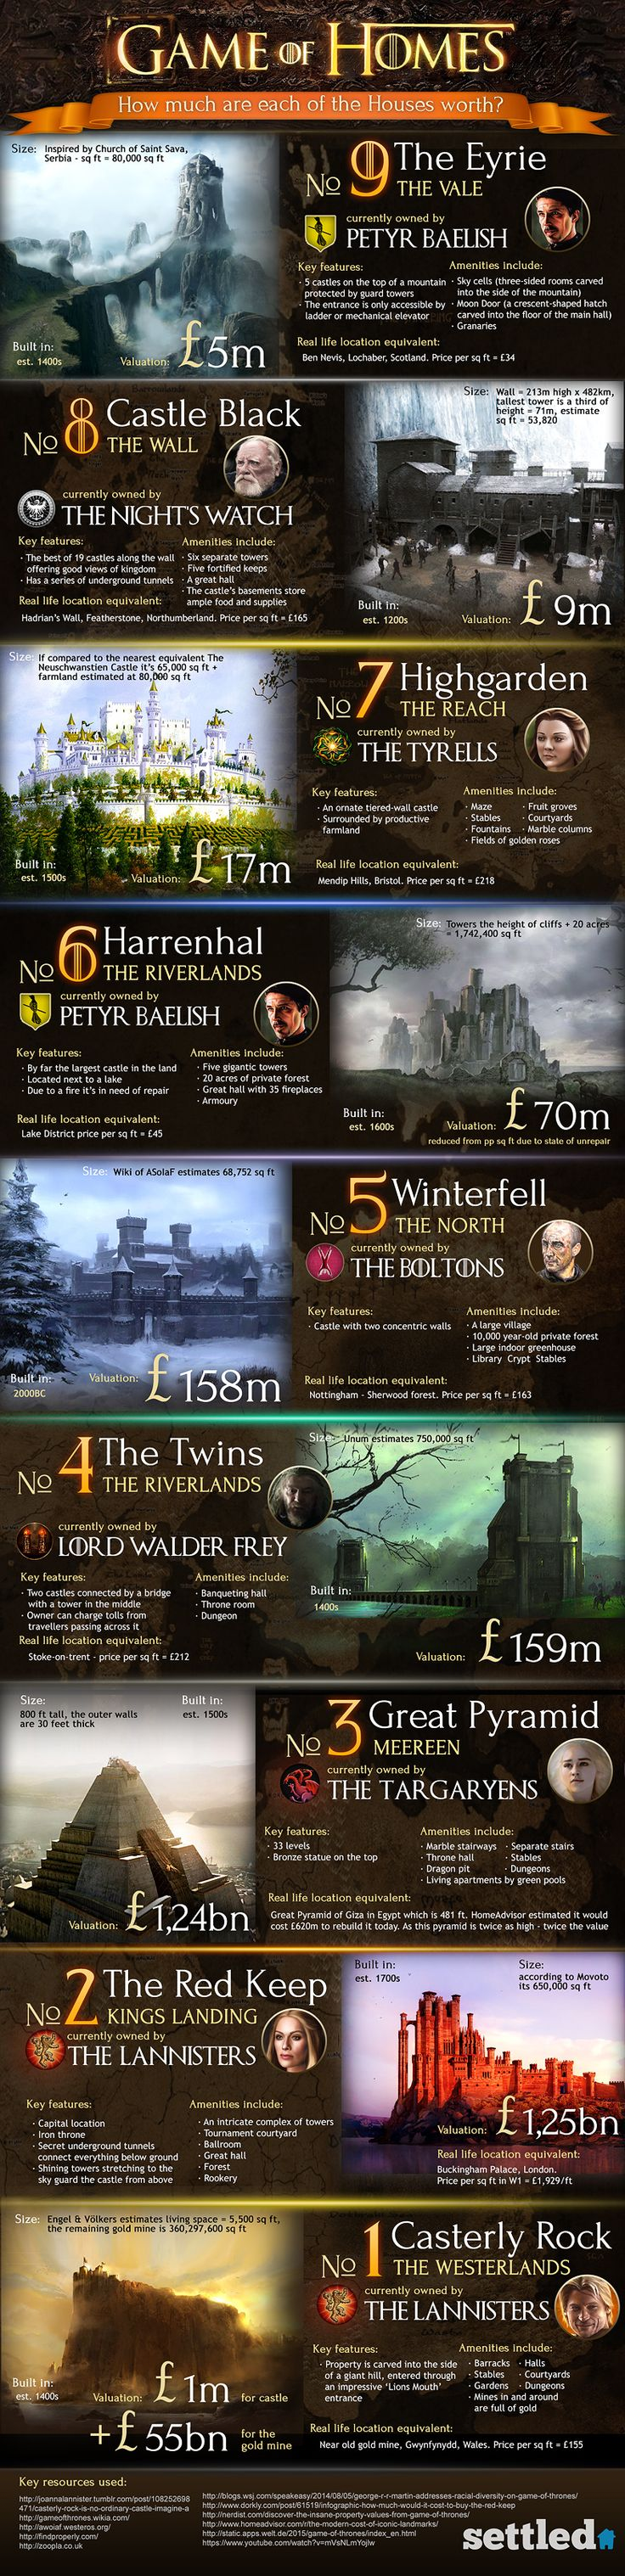 game of thrones list episodes wikipedia